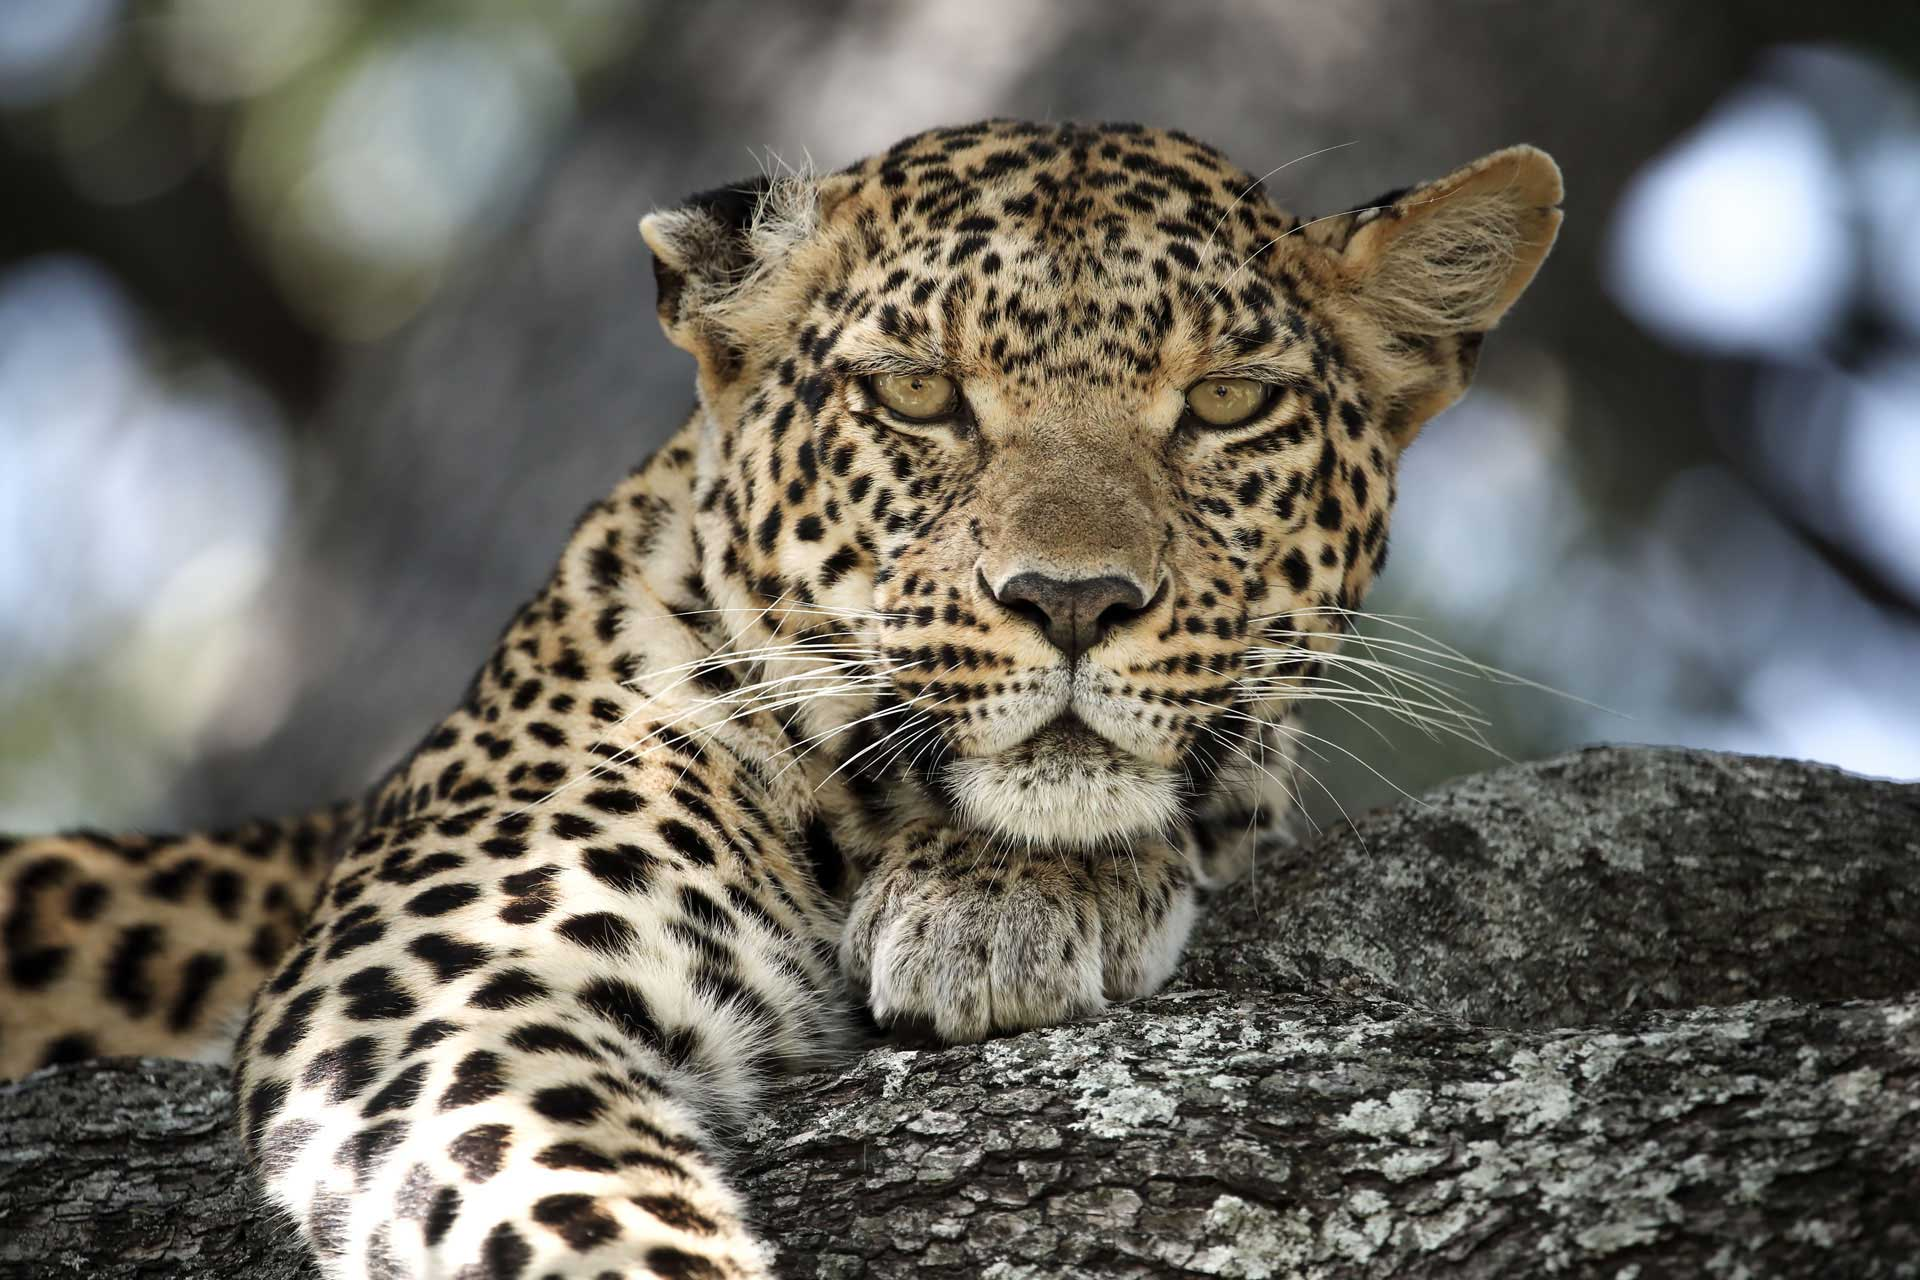 wilderness-mombo-camp-leopardo-botswana-okavango-delta-big 5-enkosi-africa-safari